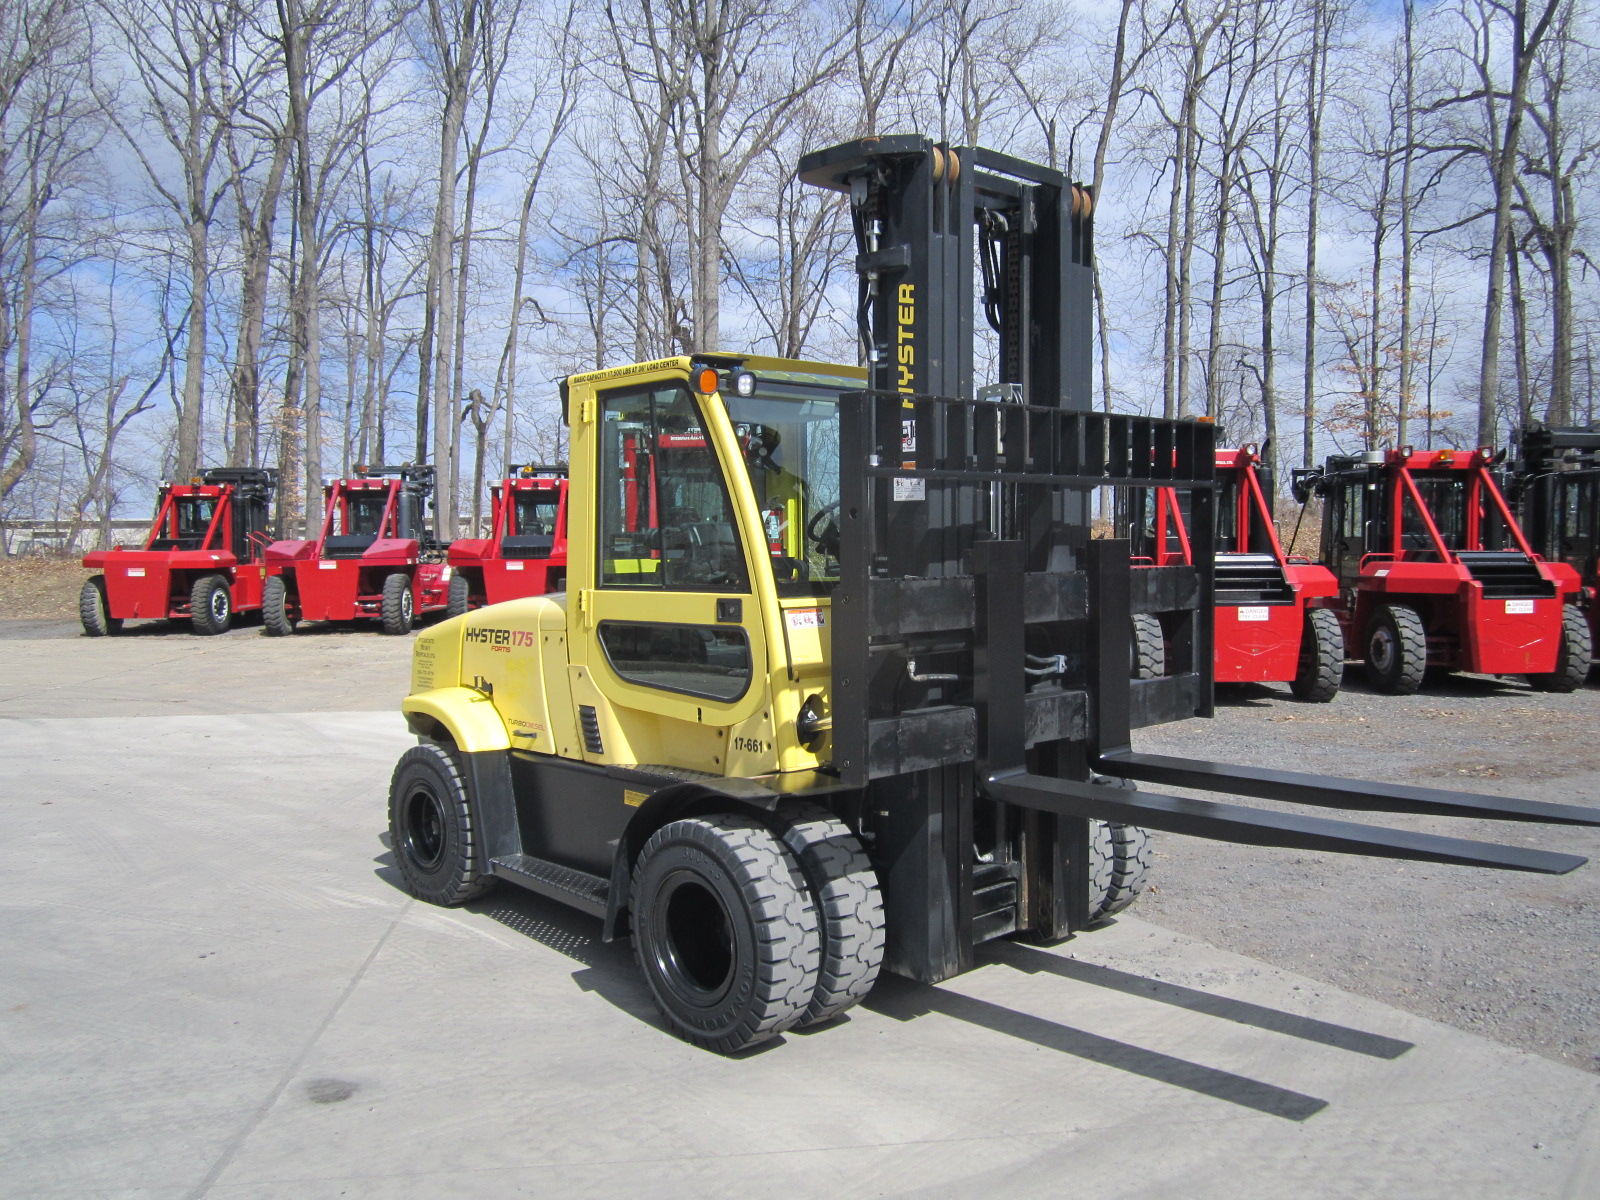 17 661 Hyster H175ft Interstate Heavy Rentals Forklift Wiring Diagram Shifter 17500 Lb Capacity